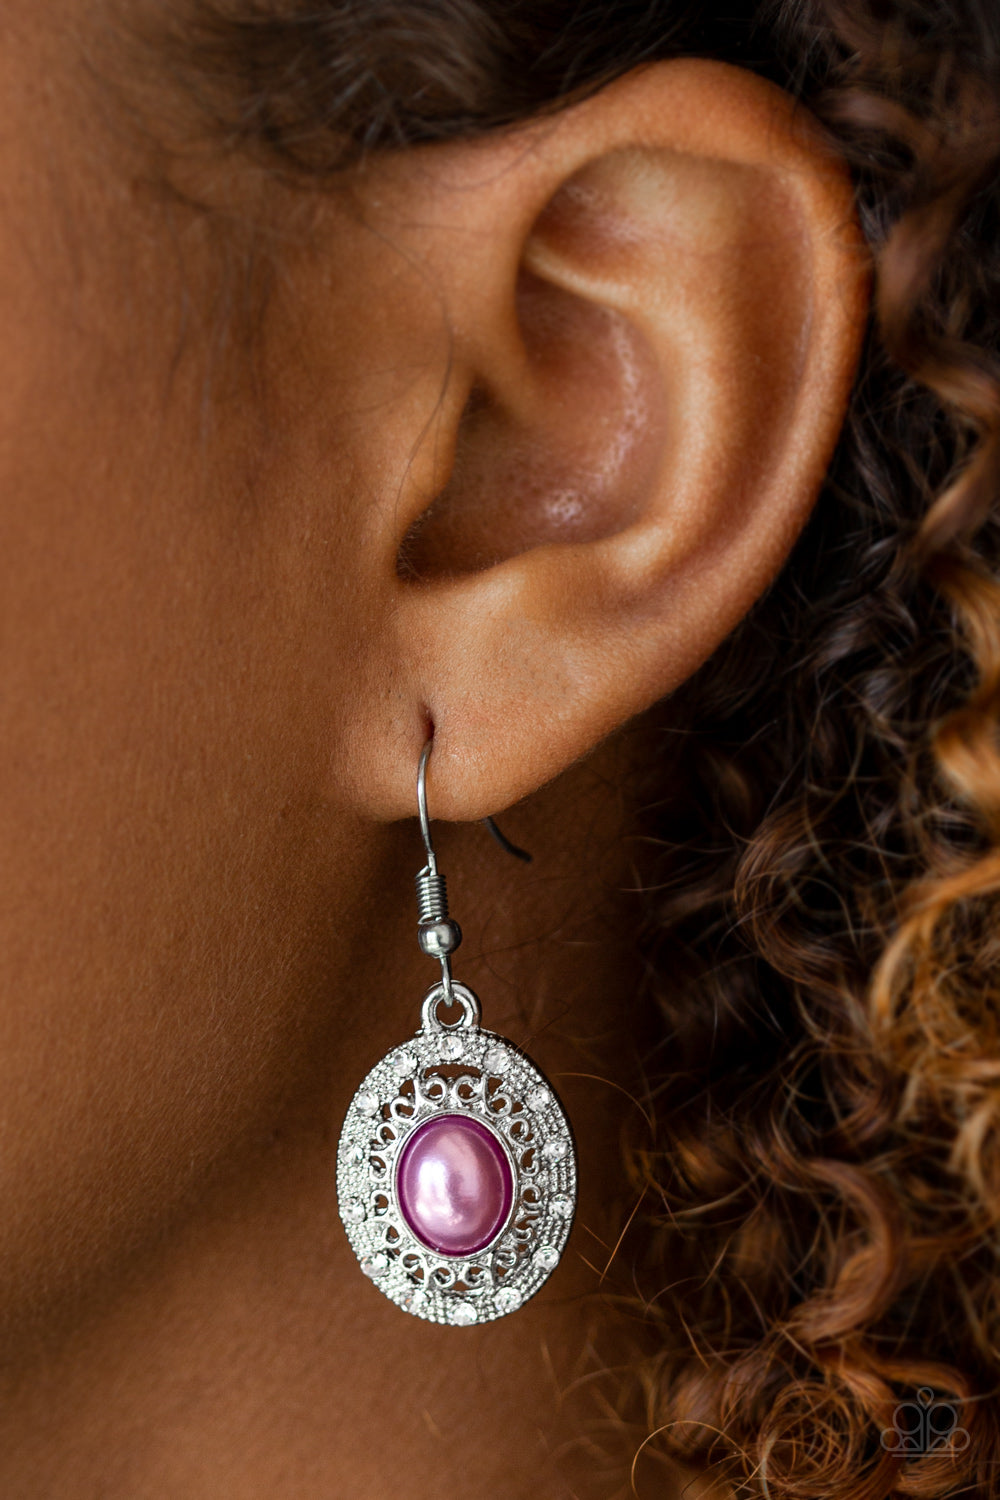 A pearly purple bead is pressed into the center of an ornate silver frame radiating with glassy white rhinestones for a regal look. Earring attaches to a standard fishhook fitting.  Sold as one pair of earrings.  Always nickel and lead free.